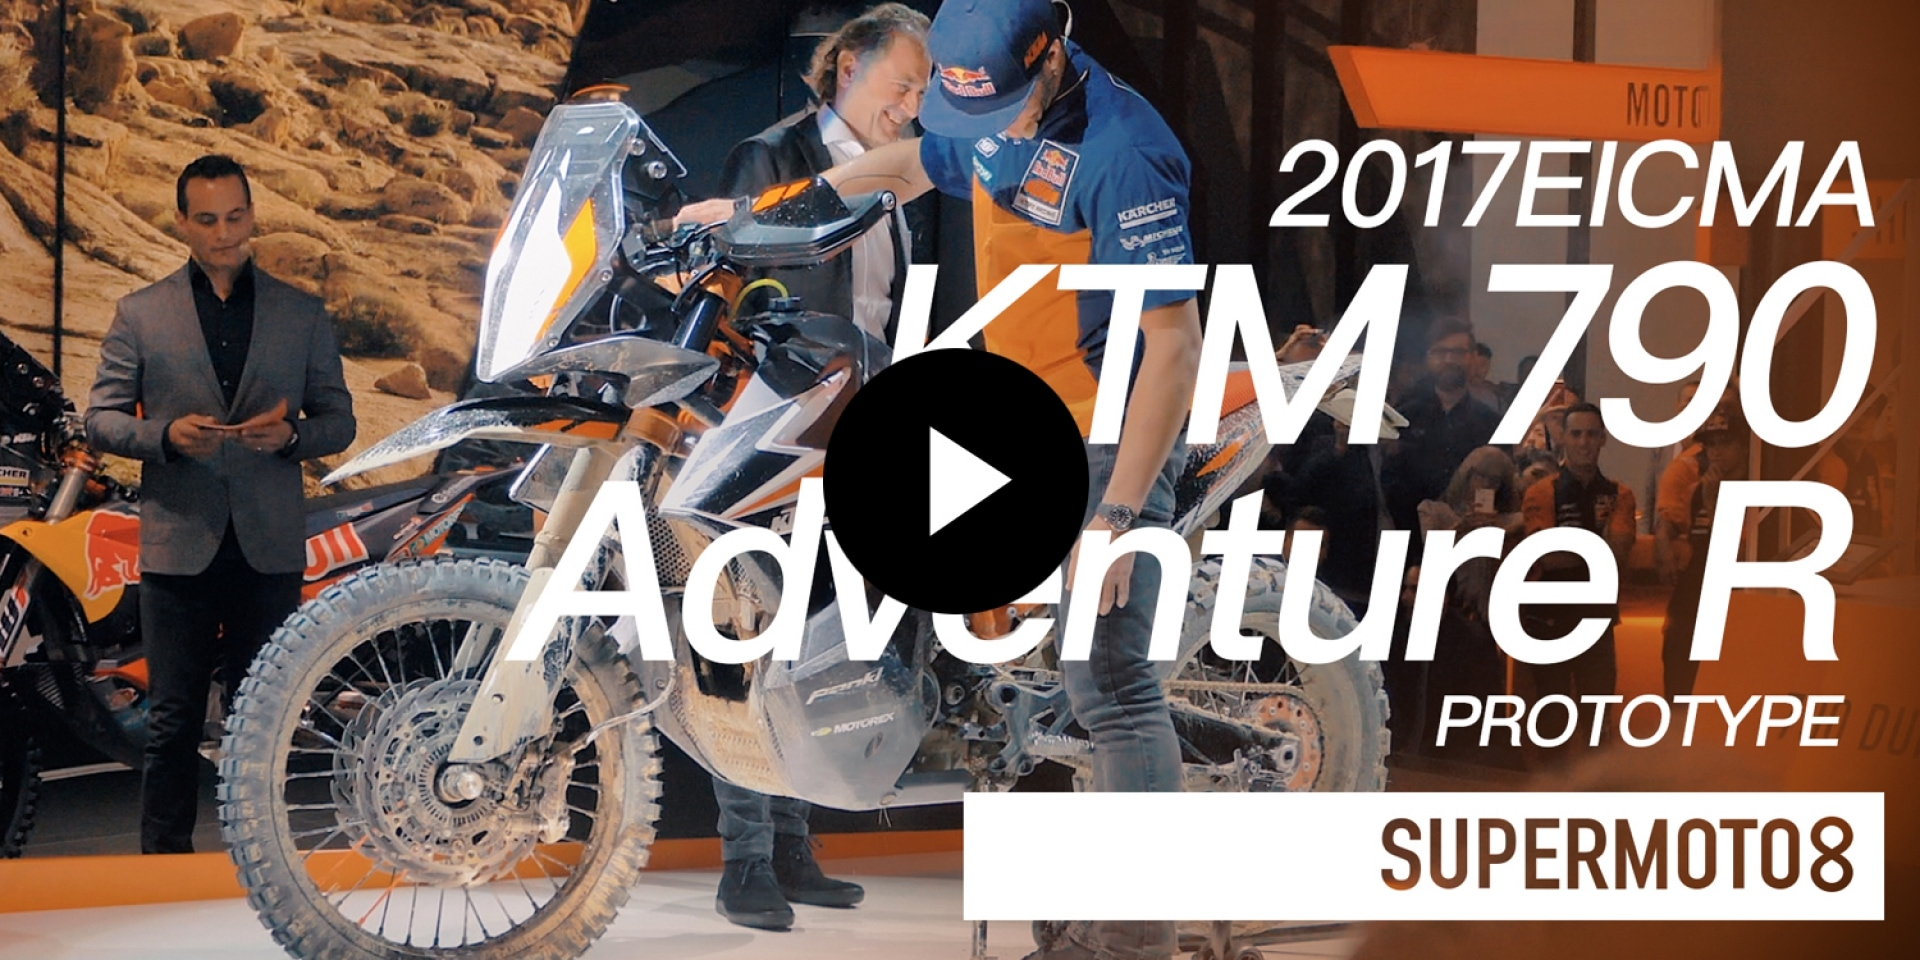 米蘭車展。KTM790 Adventure R Prototype